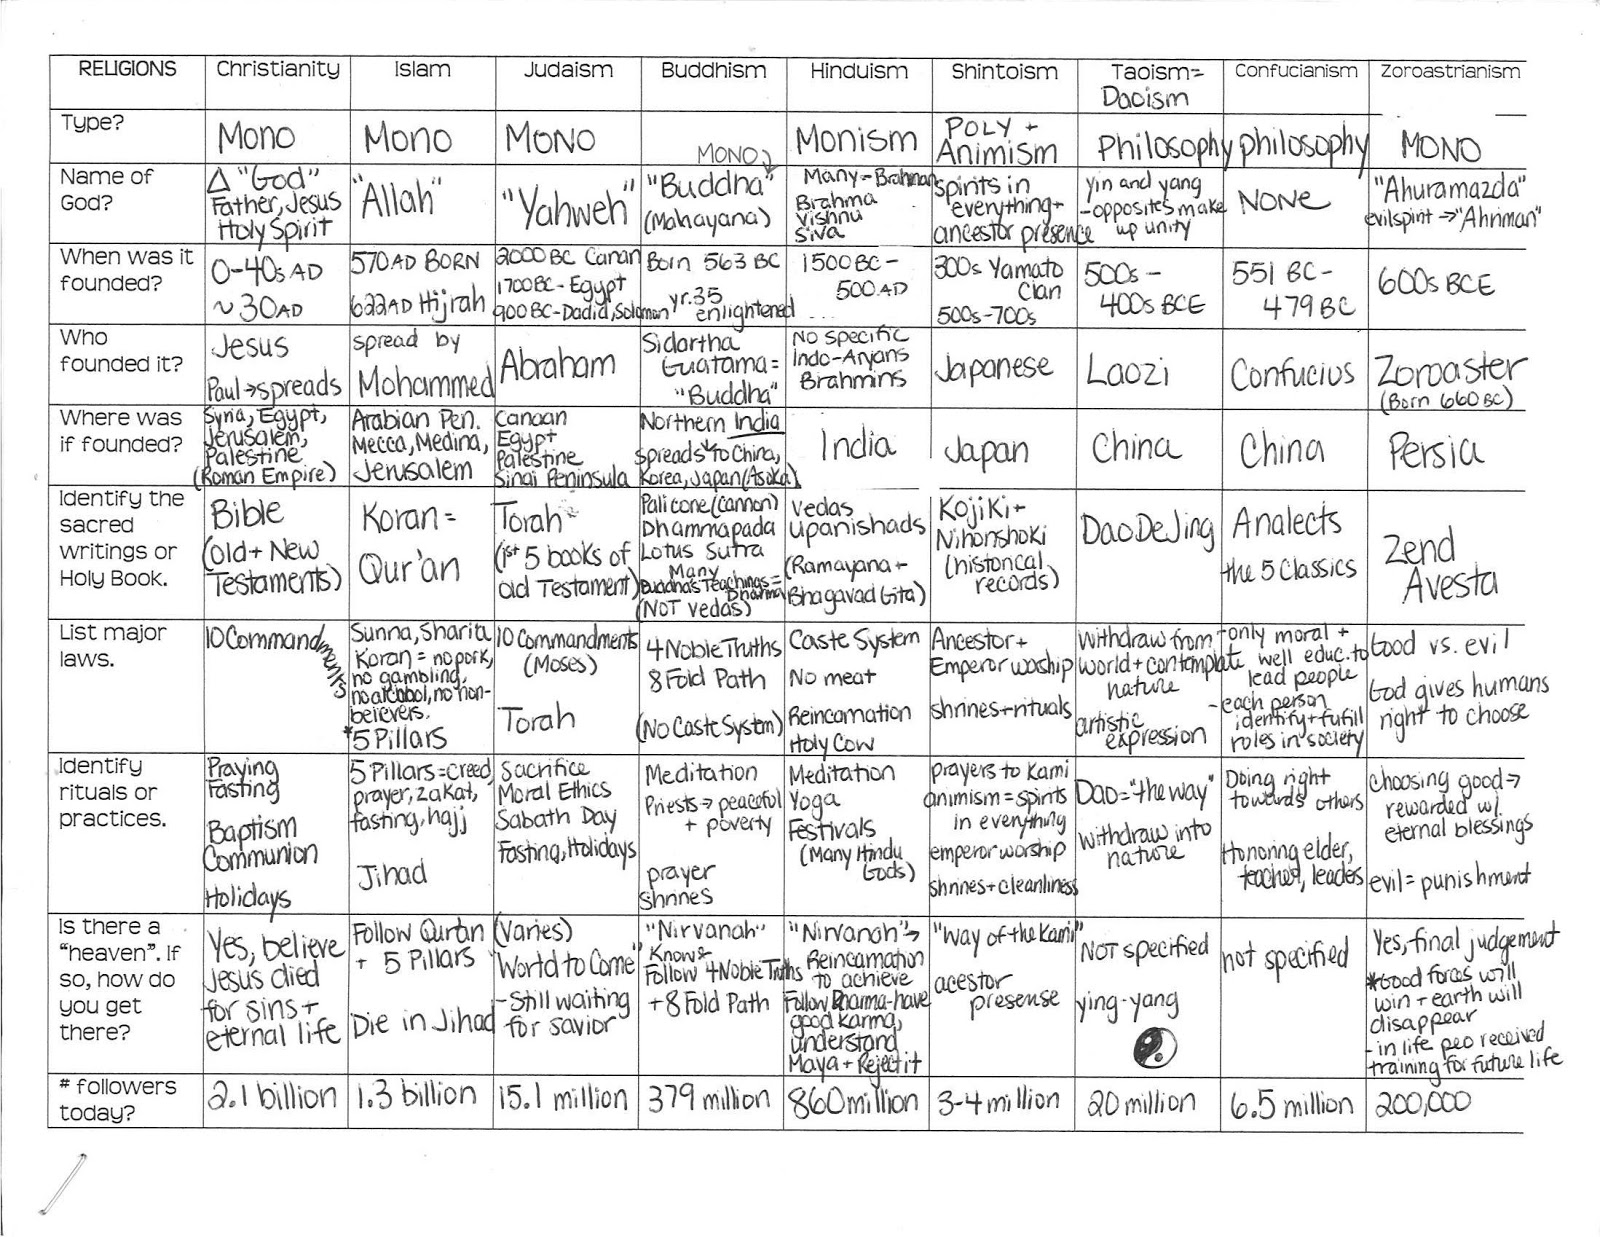 a comparison of buddhism and christianity in world history This is a chart i use with my students to compare five major world religions-- judaism, christianity, islam, hinduism and buddhism it is meant to have the students learn the basics and be able to know the major aspects of all the religions.